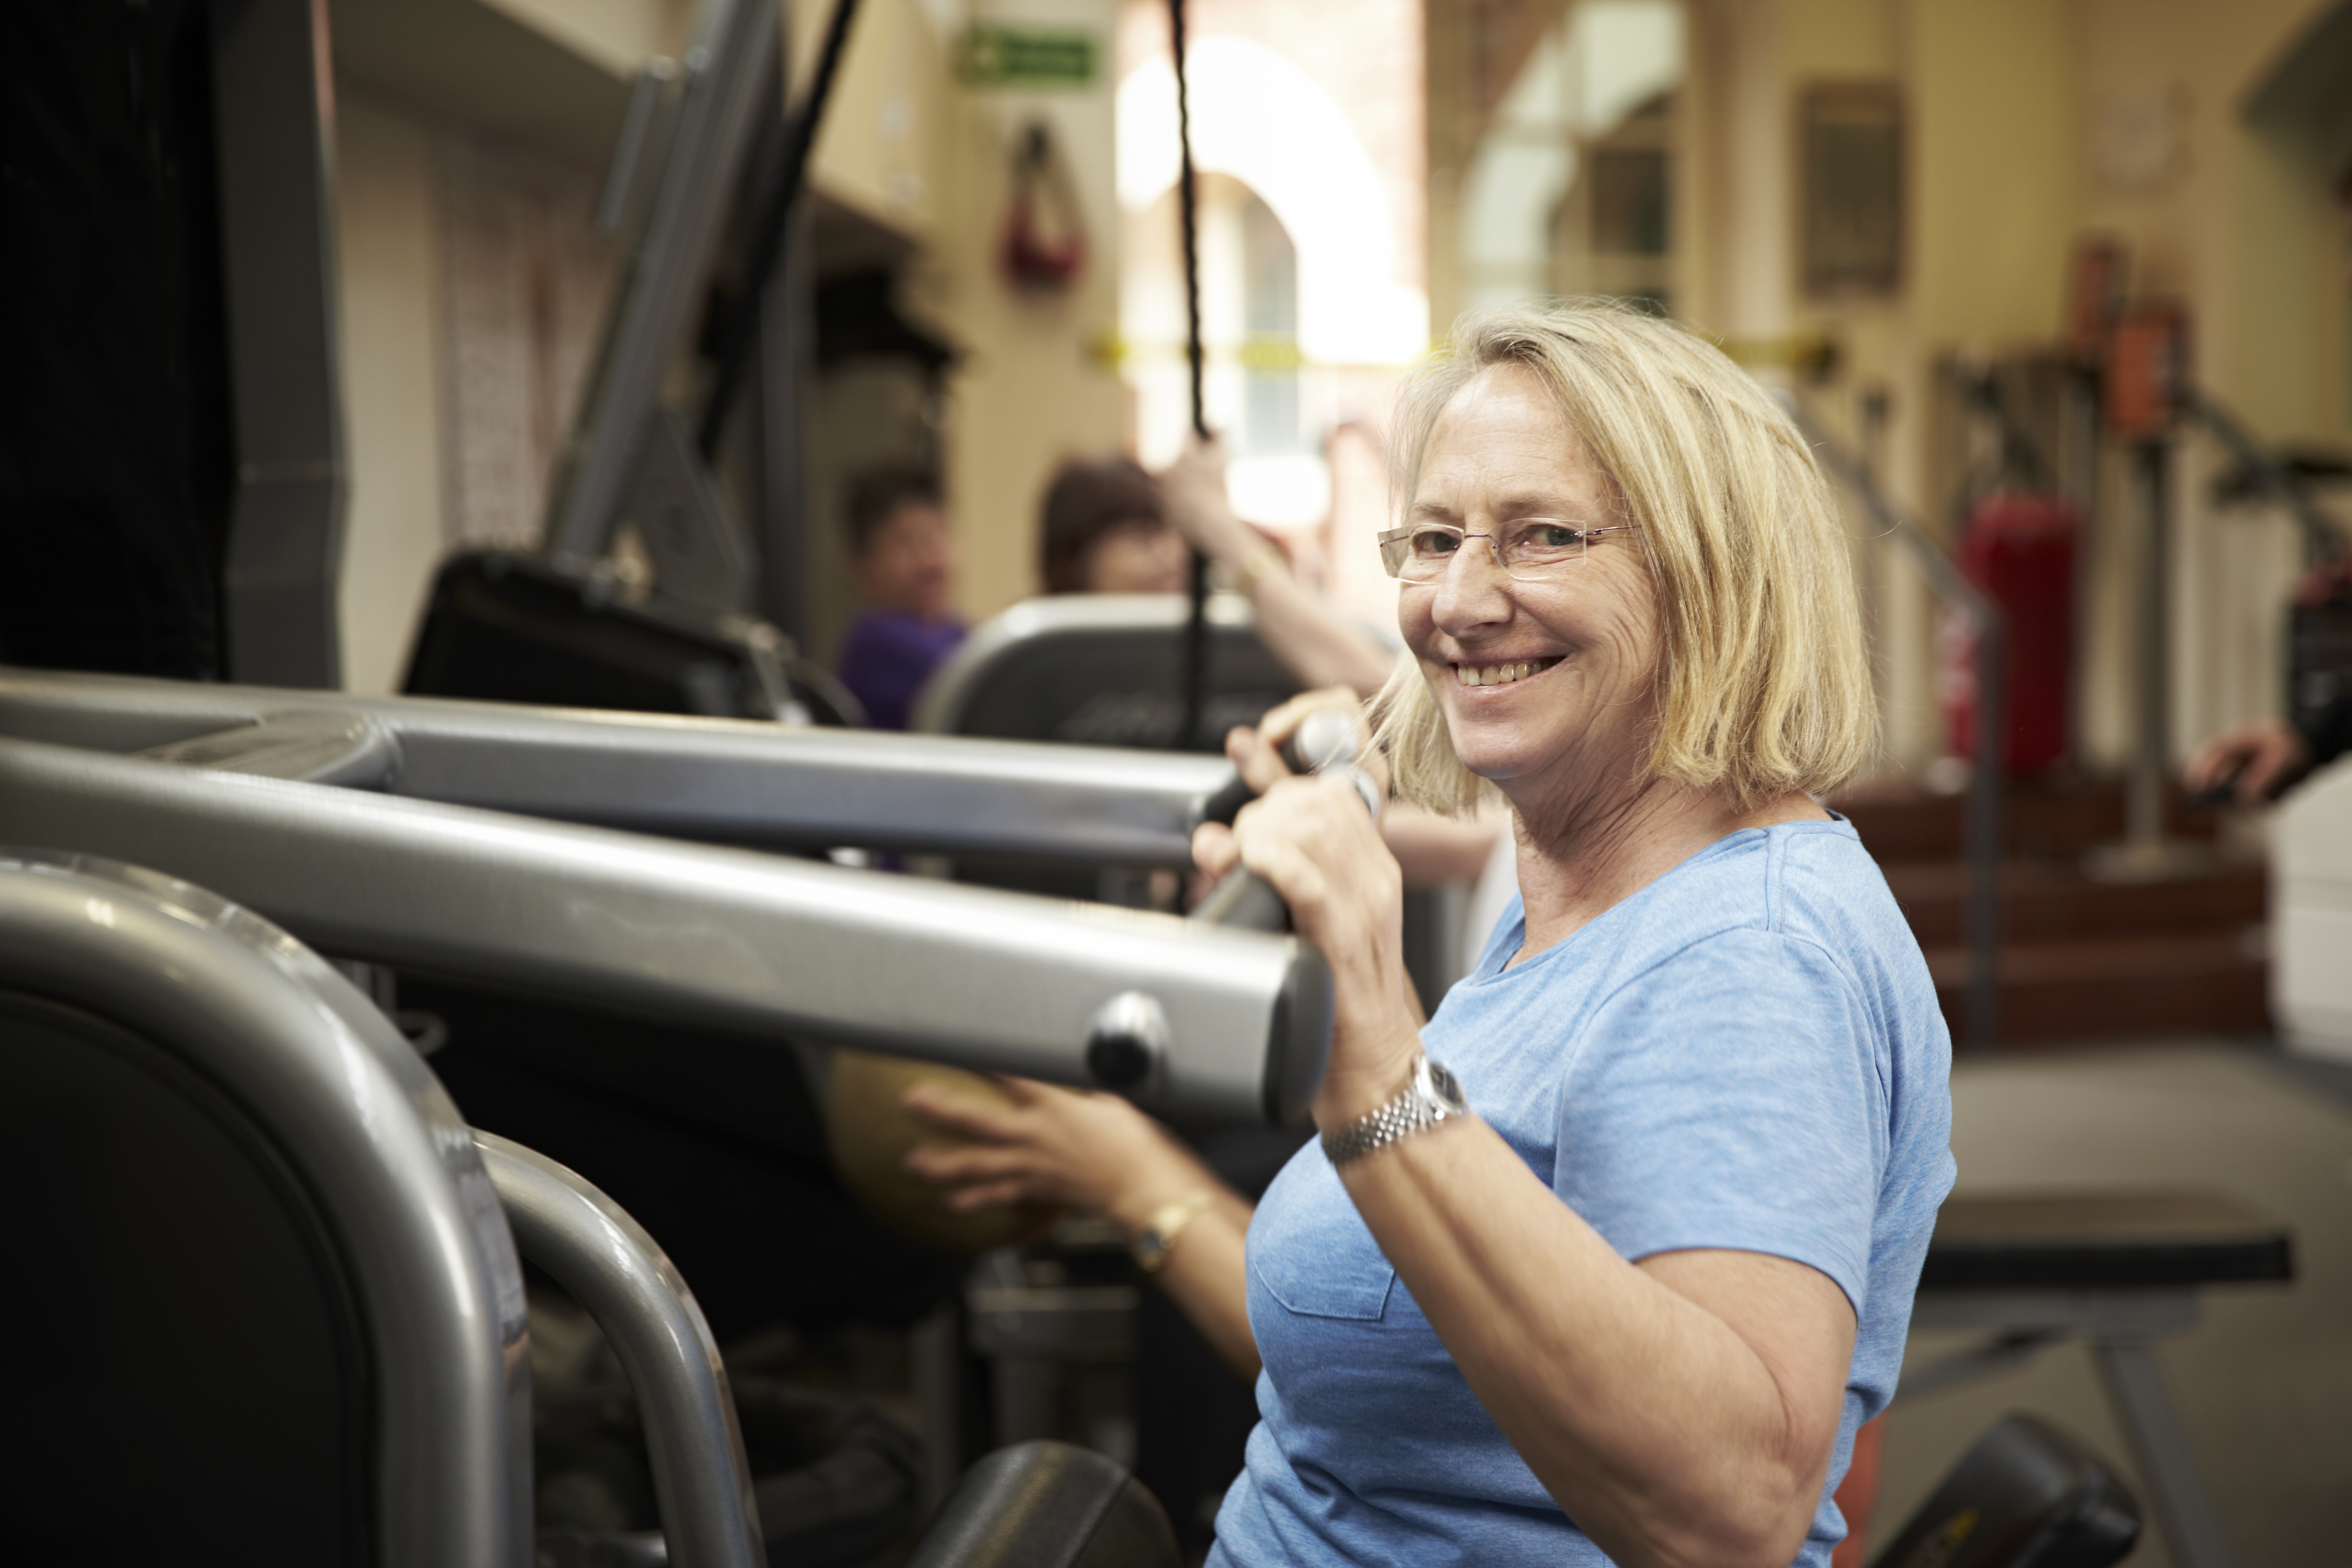 Kensington Community Recreation Centre includes a health club with qualified staff and modern equipment.